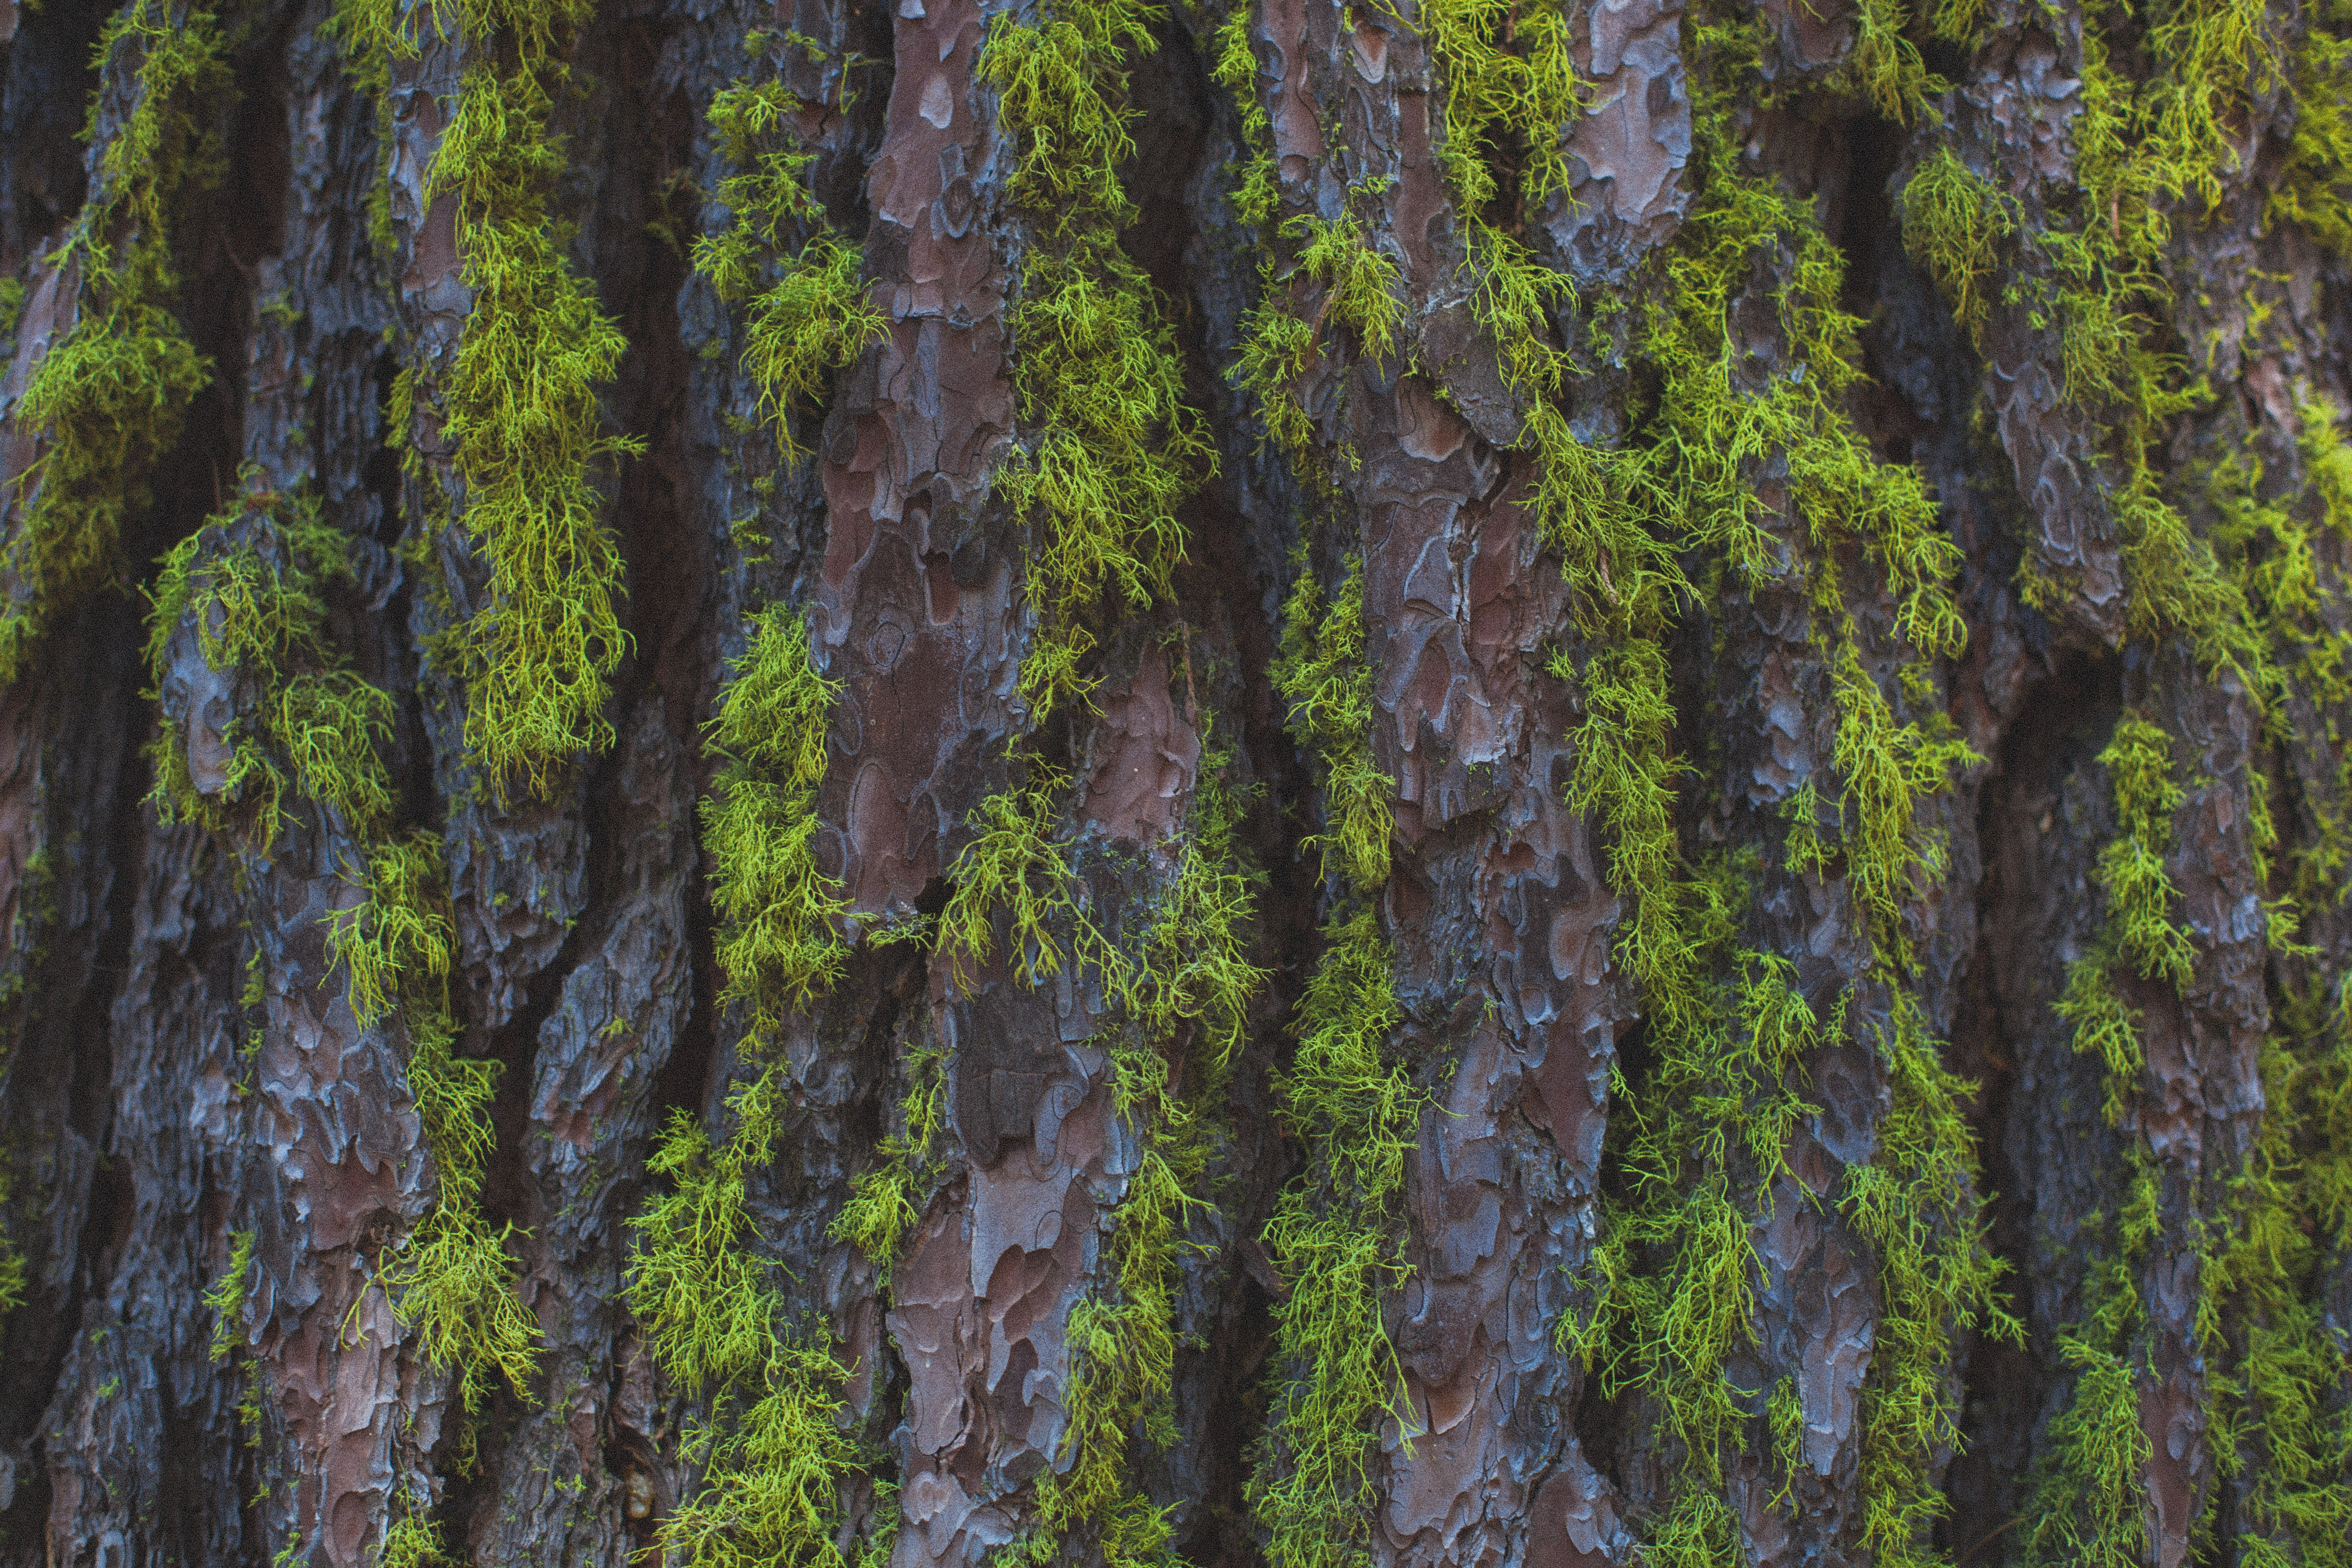 Close-up of green moss on the rough bark of a tree